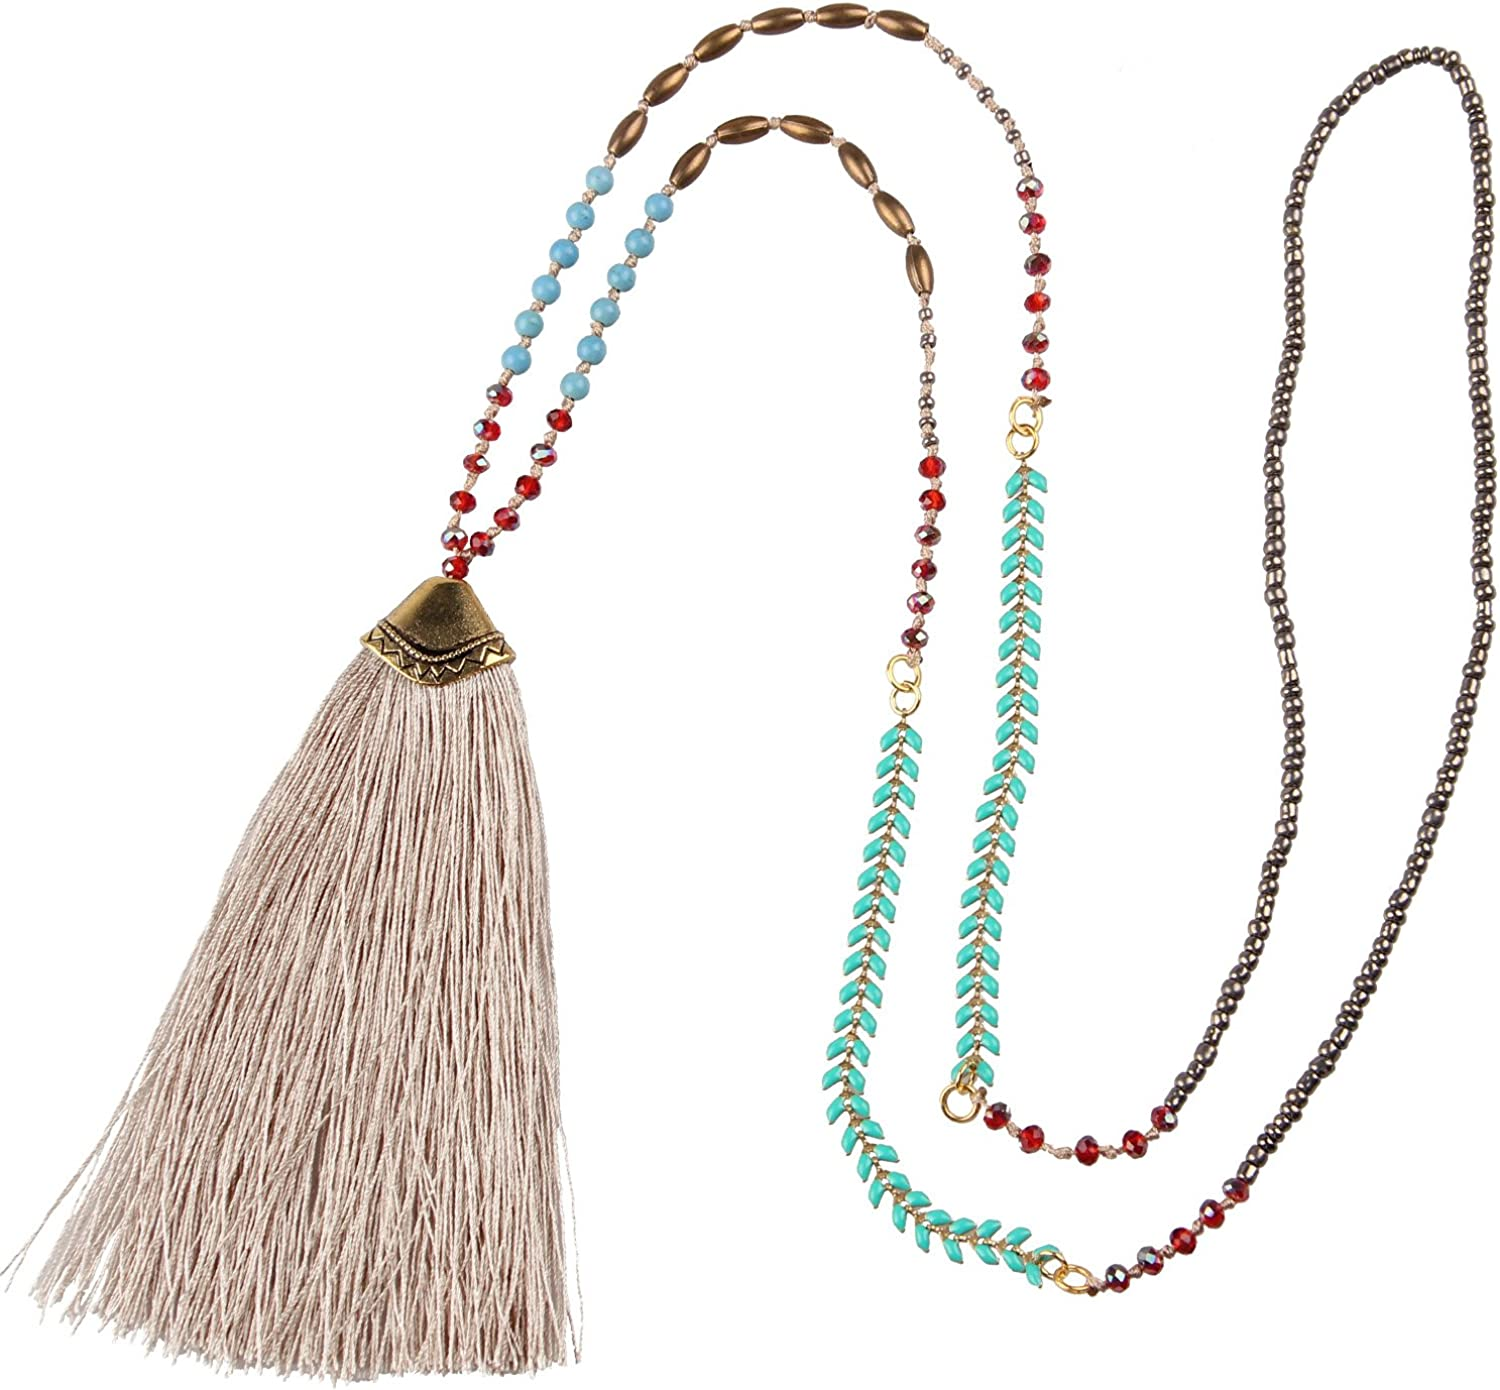 KELITCH Wood Crystal Beaded Bohemian Y Necklace Peace Sign Tassel Pendant Long Necklaces Handmade Charm Chain Link Jewelry Gift